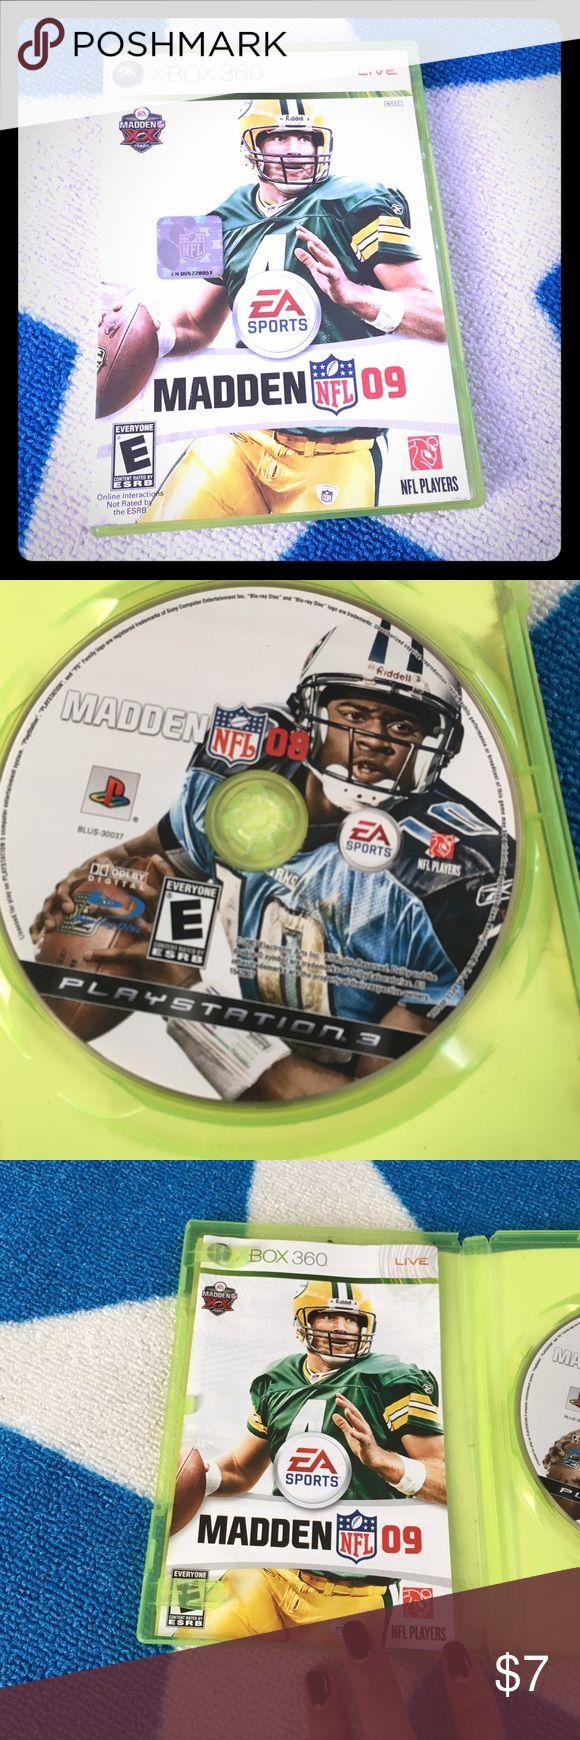 Madden 08 NFL Xbox 360 Can connect to Xbox live. Xbox 360 Other